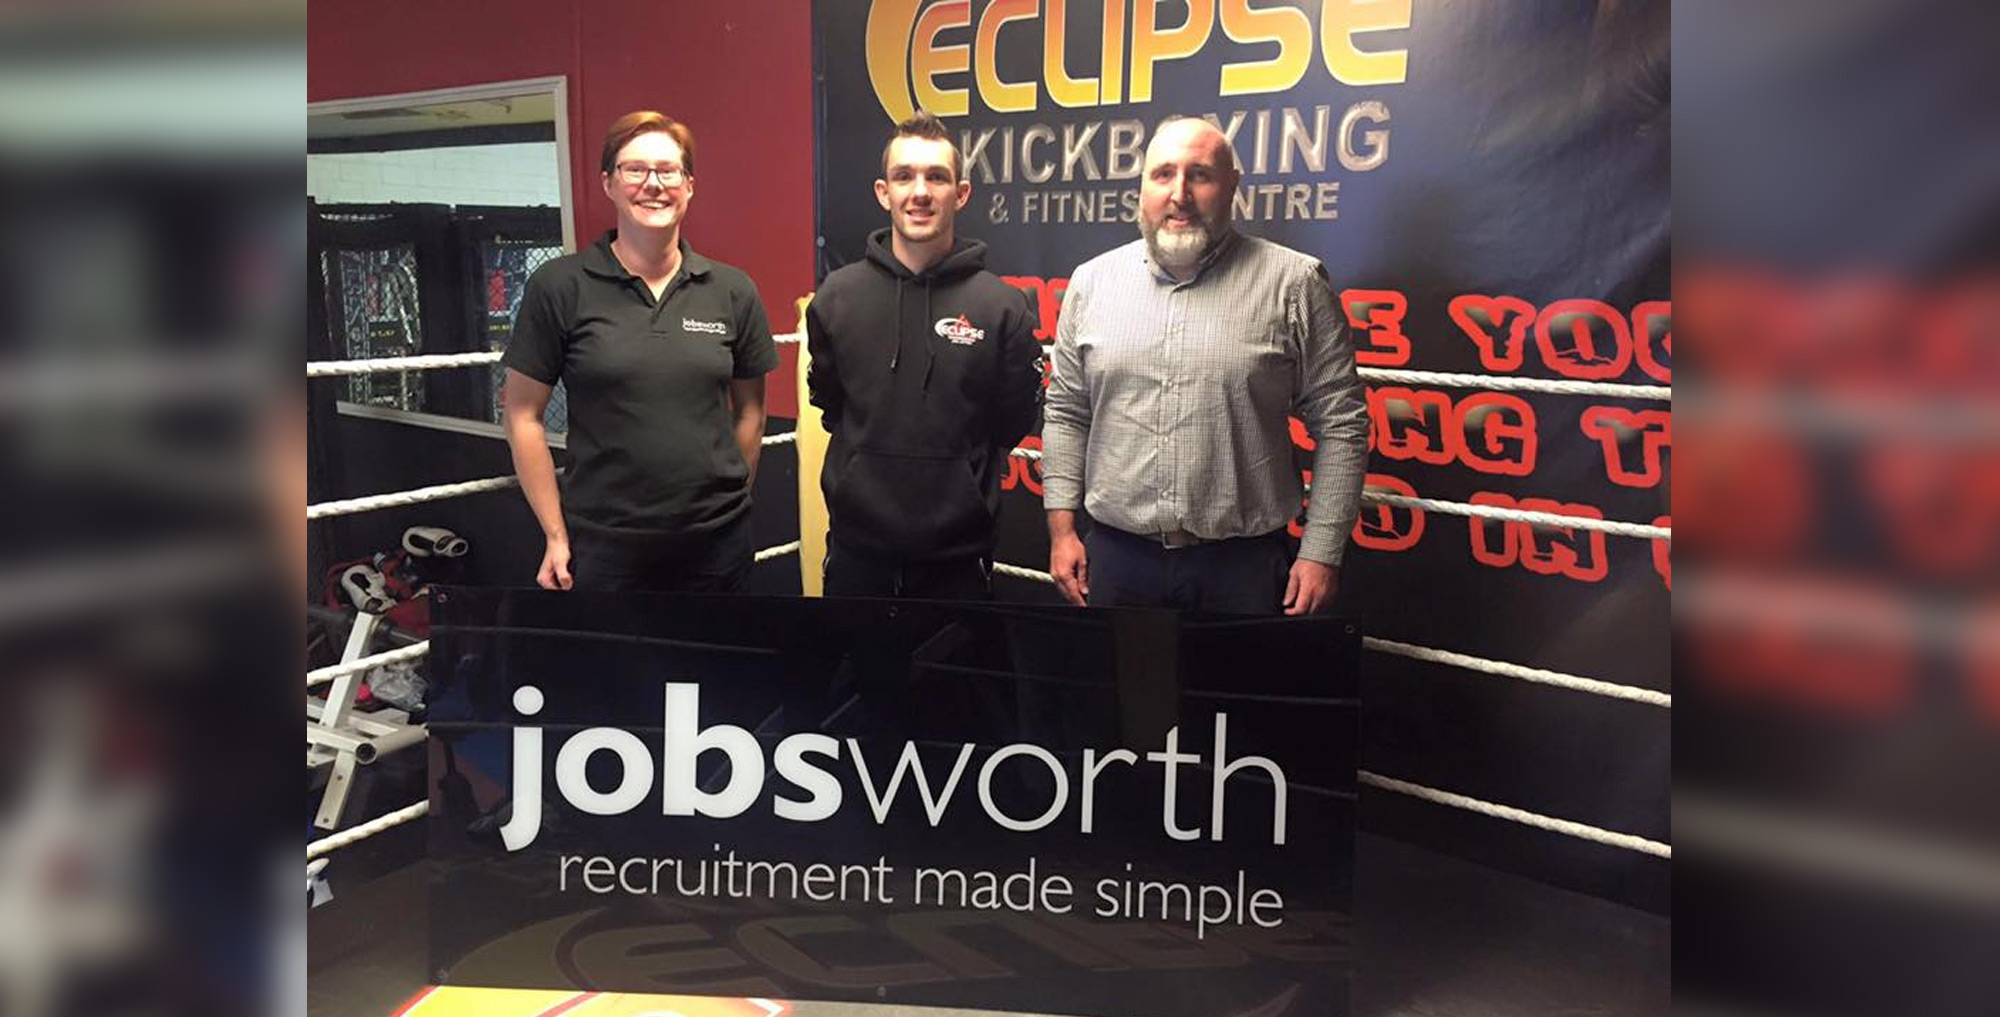 Lucy and Robin with Jobsworth sign stood inside boxing ring with Kyle Williams, local champ